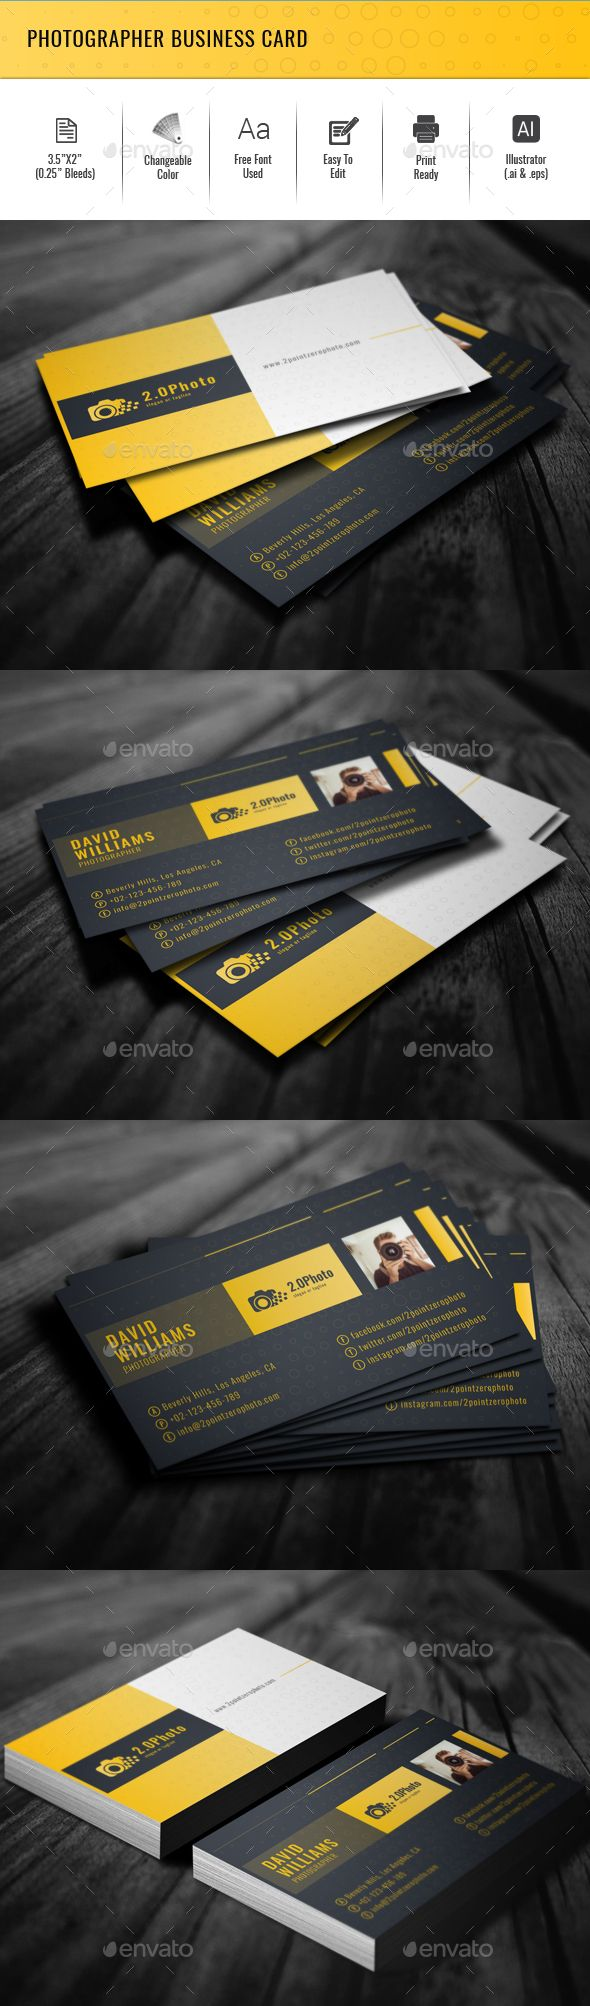 Photographer business card photographer business cards business photographer business card creative business cards download here httpsgraphicriveritemphotographer business card 19945496refalena994 reheart Images